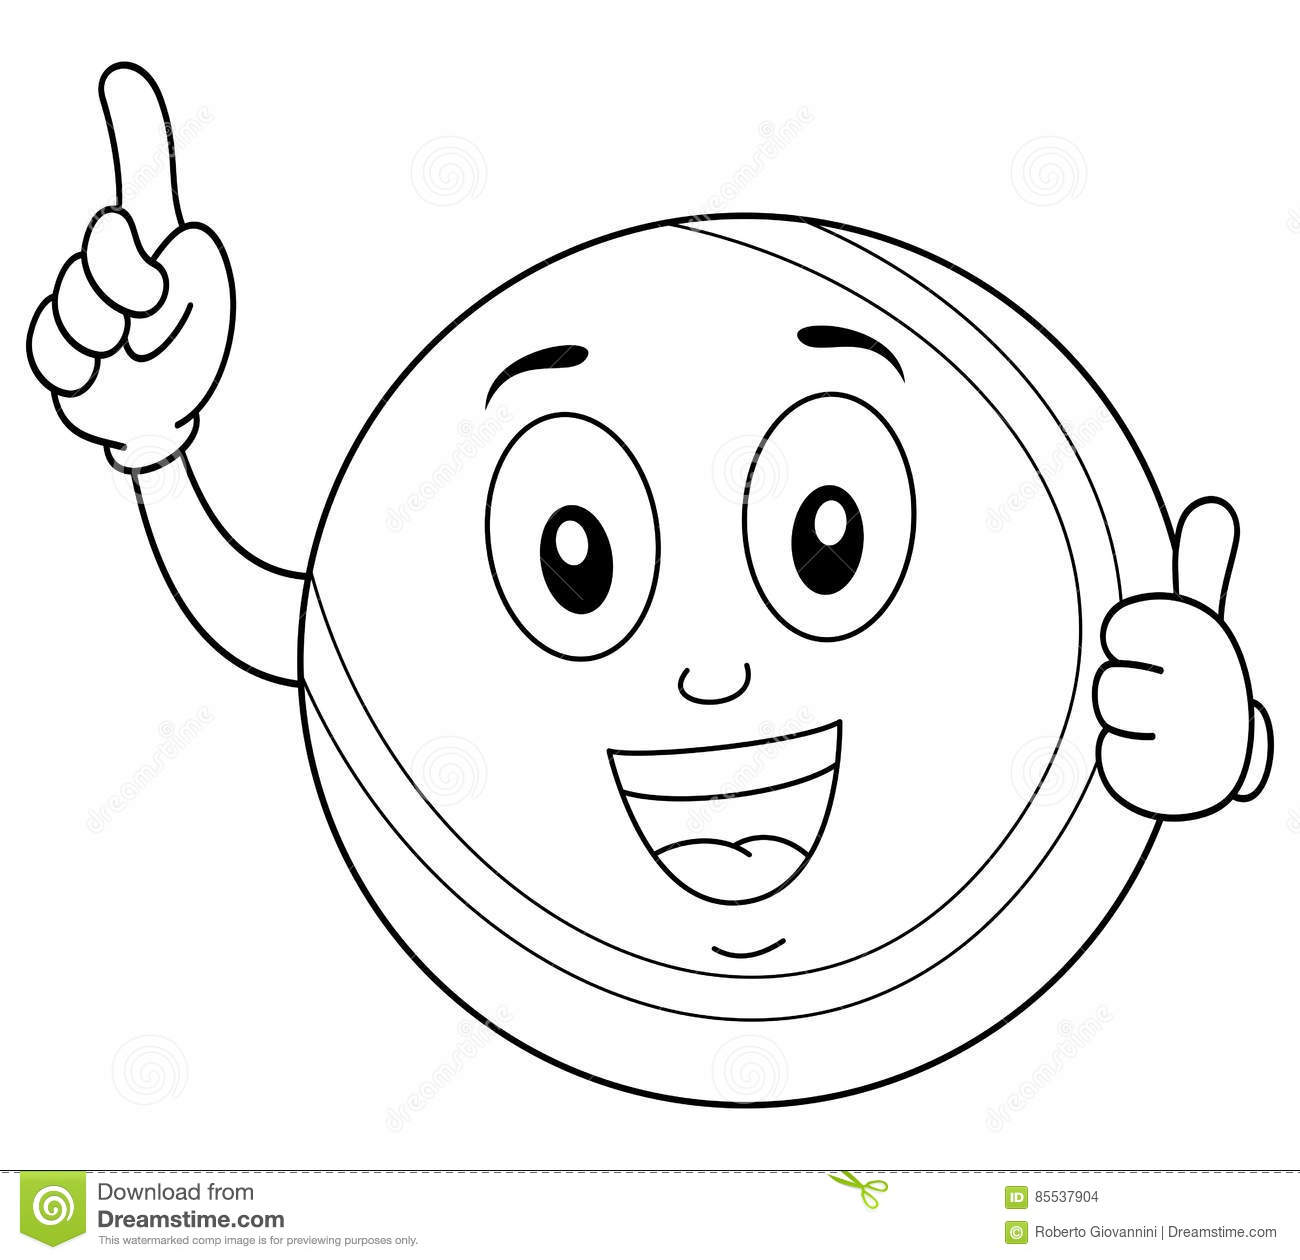 thumbs up coloring page - coloring tennis ball character thumbs up stock vector